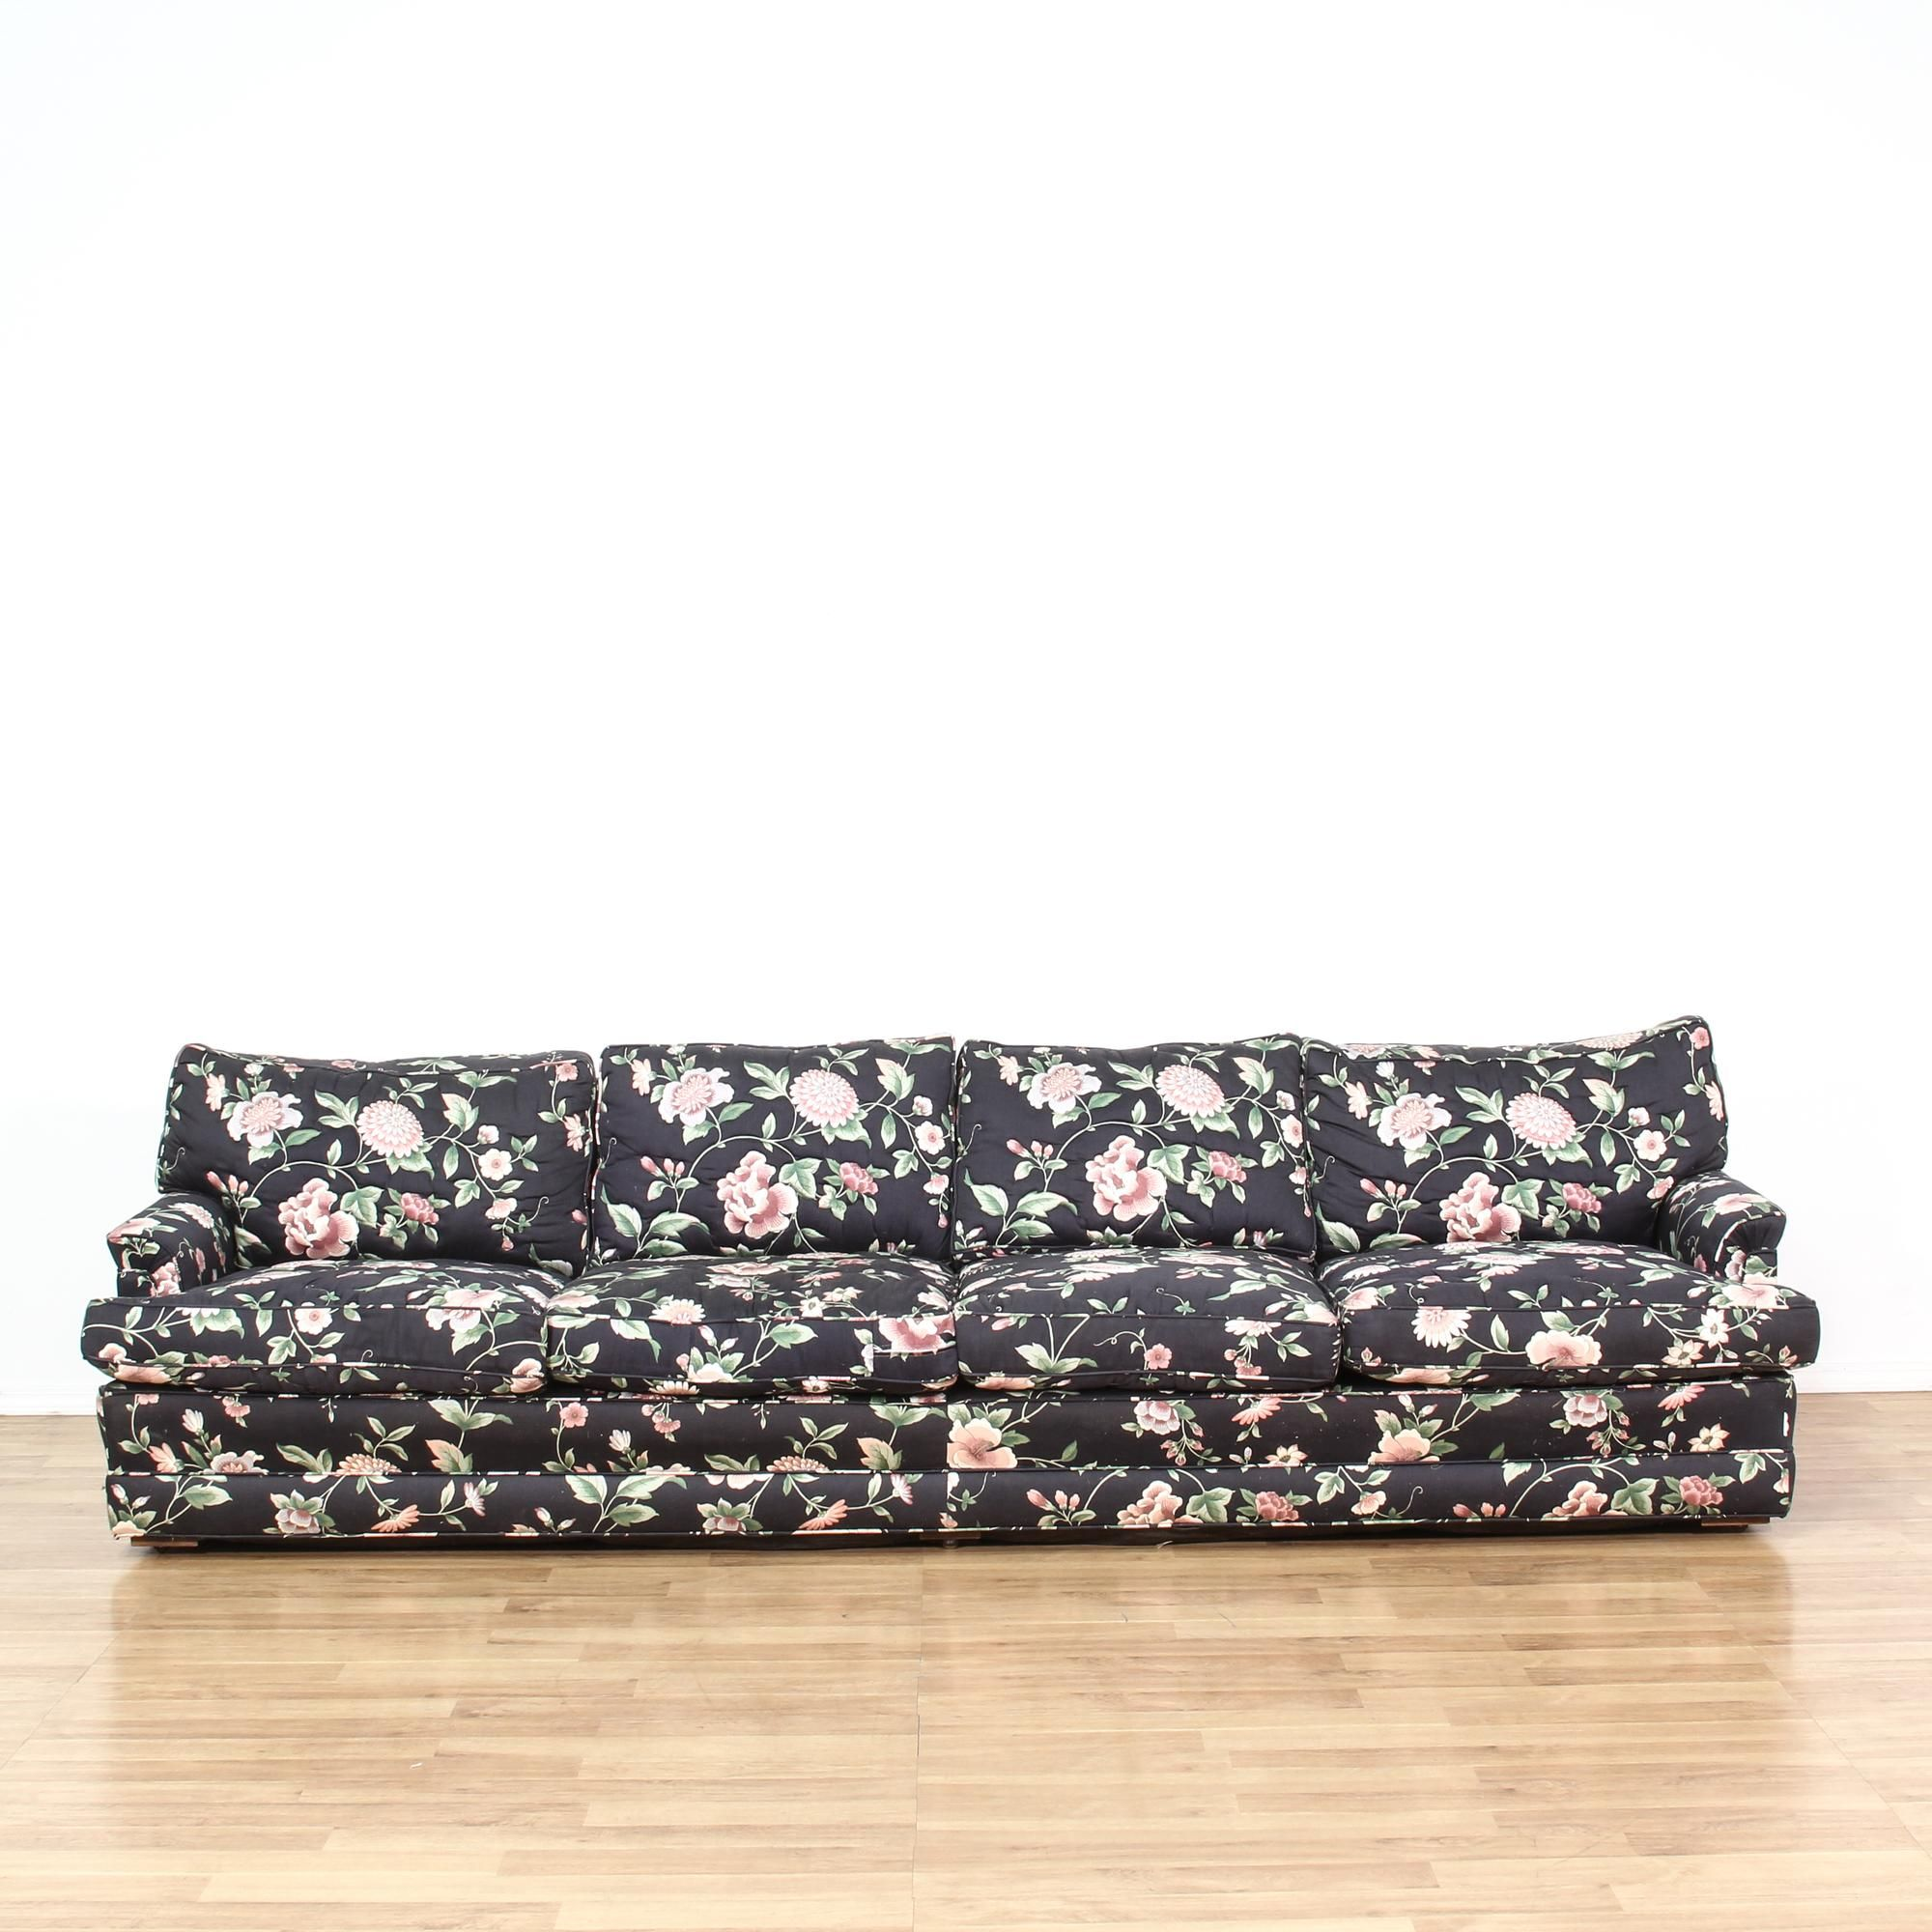 This Sofa Is Upholstered In A Gorgeous Navy Blue All Over